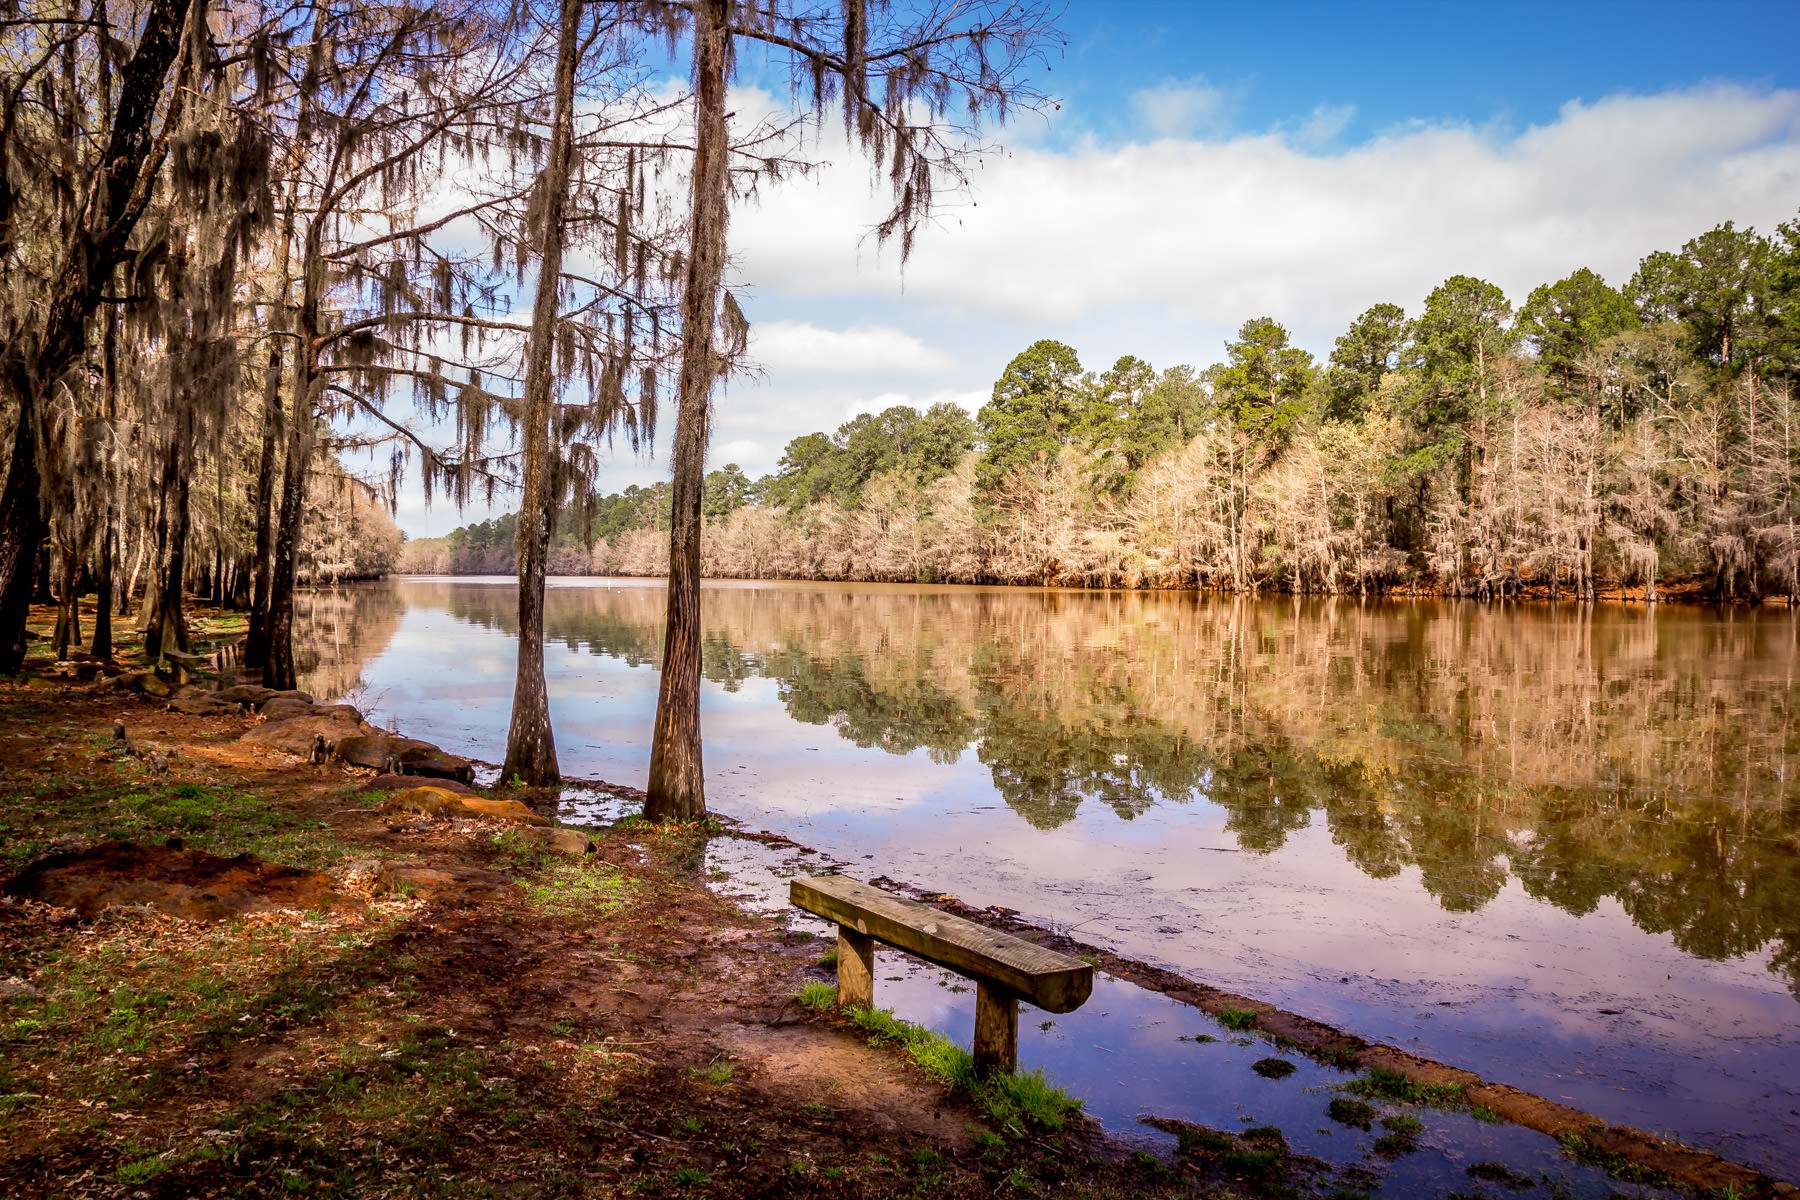 Trees and the sky reflected in the lake at Caddo Lake State Park, Texas.